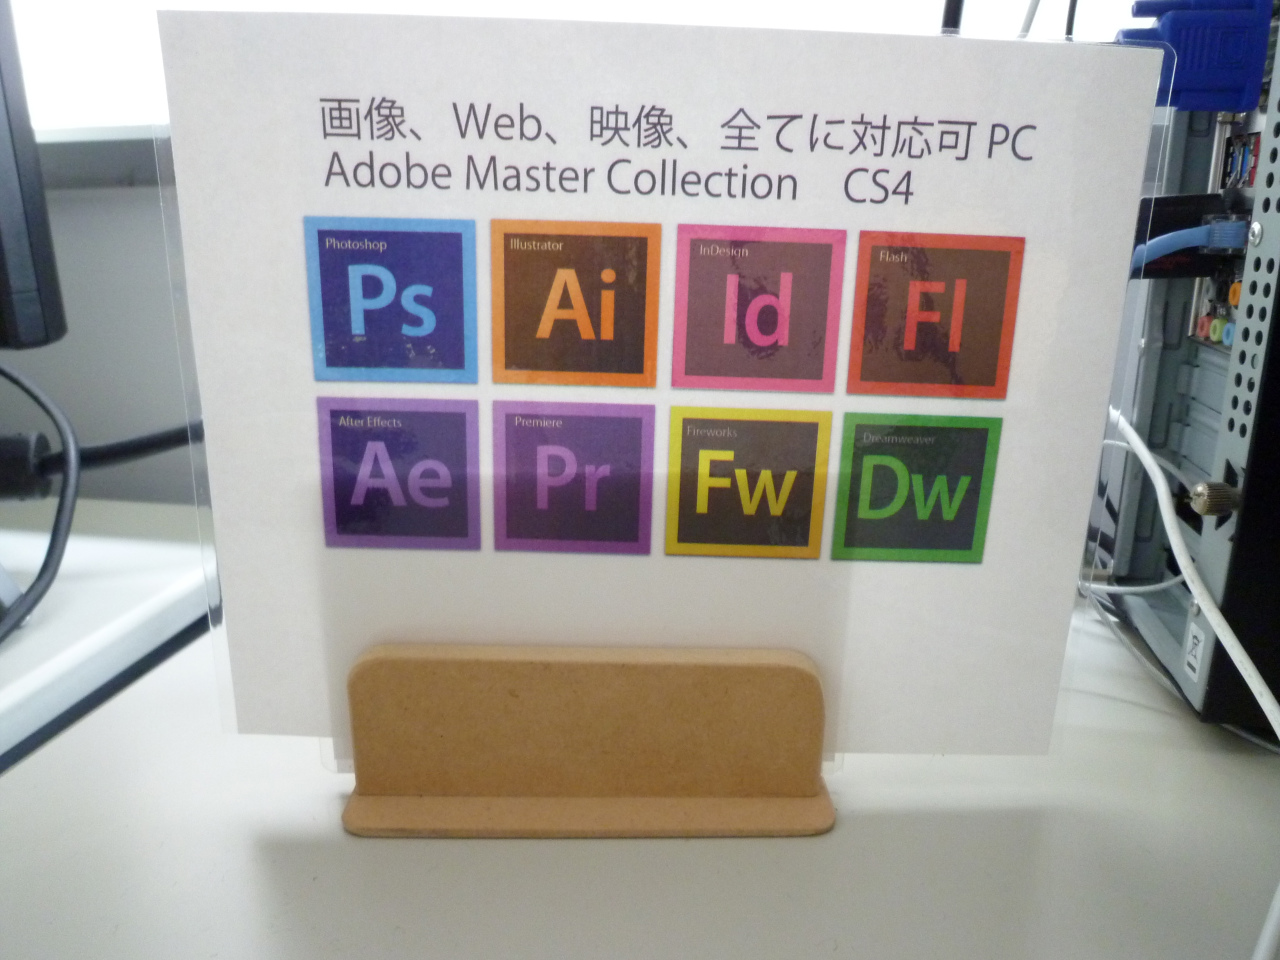 Adobe Master Collection CS4 PC with Adobe Master Collection CS4